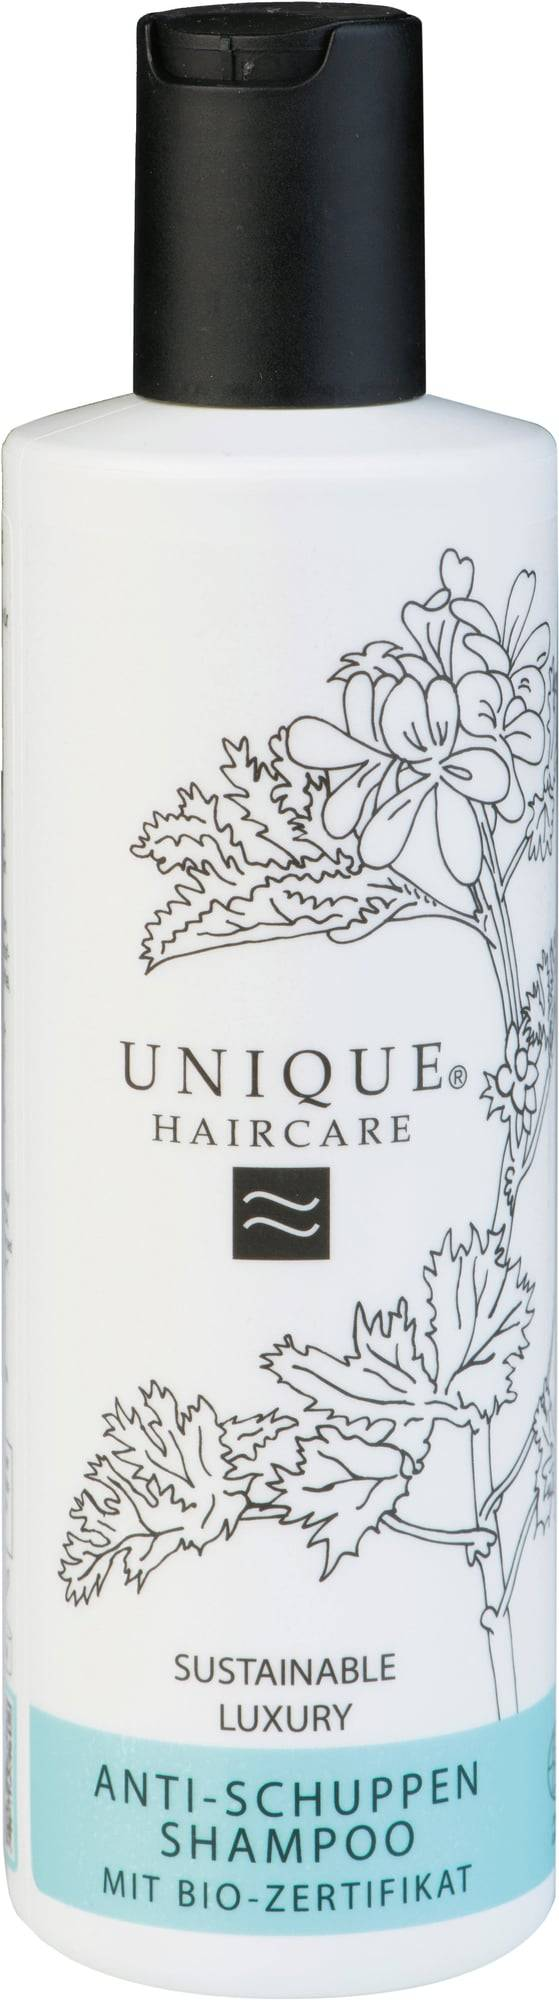 Unique Beauty Hilseshampoo - 250 ml